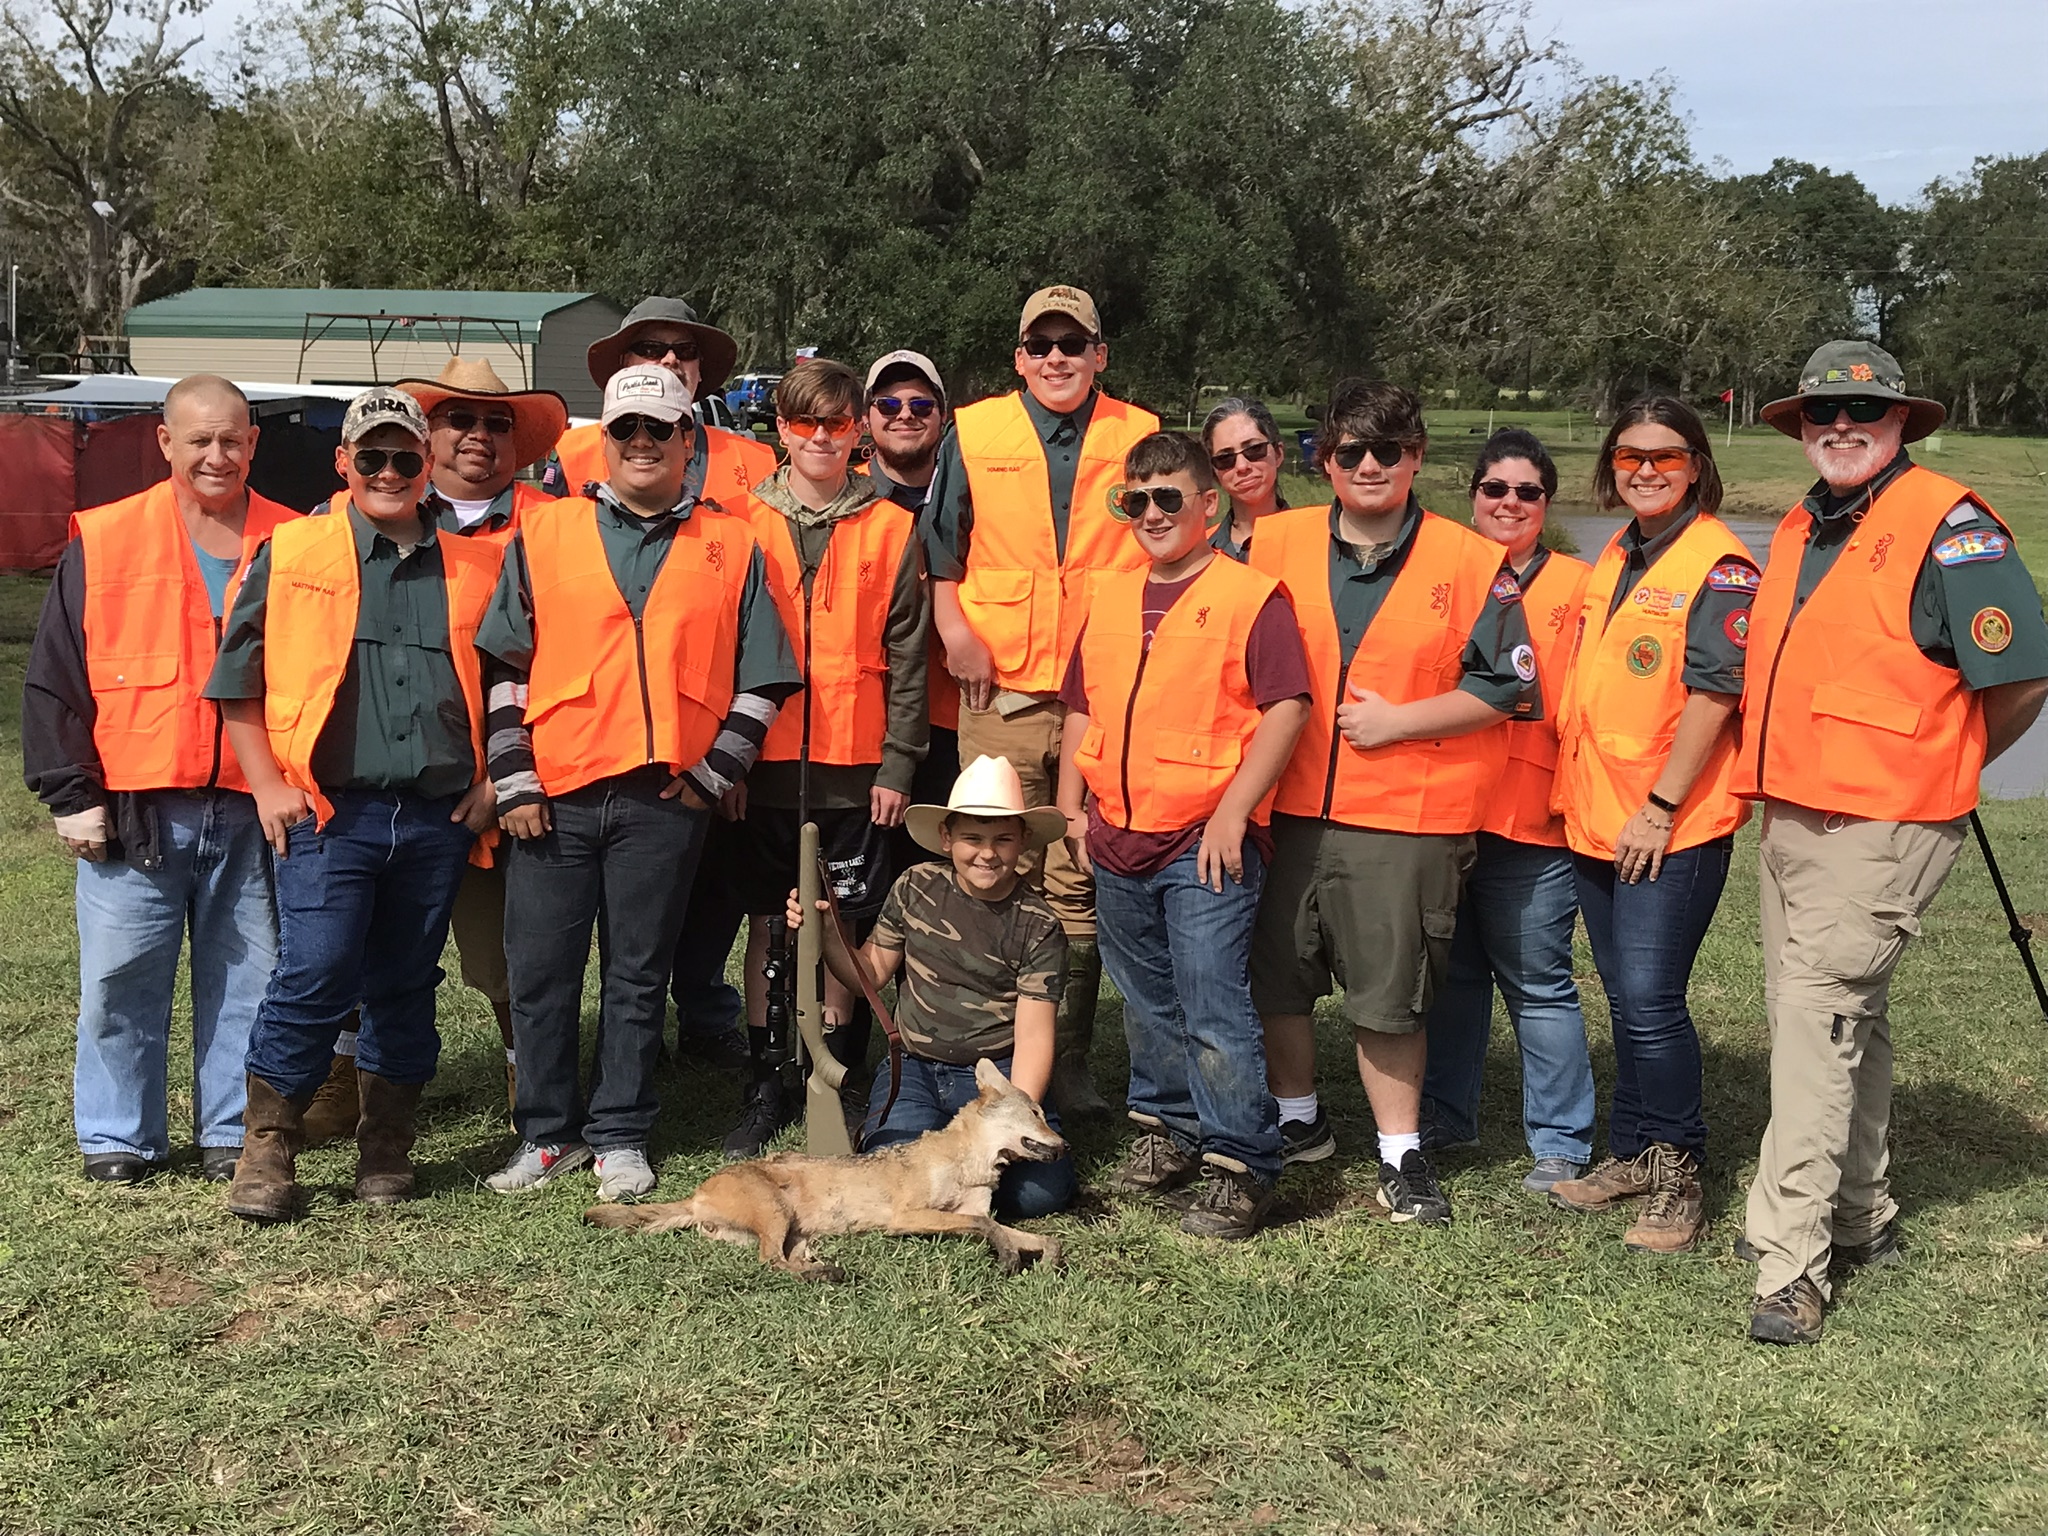 Use Texas' 2nd Amendment Model to Recruit Teen Hunters